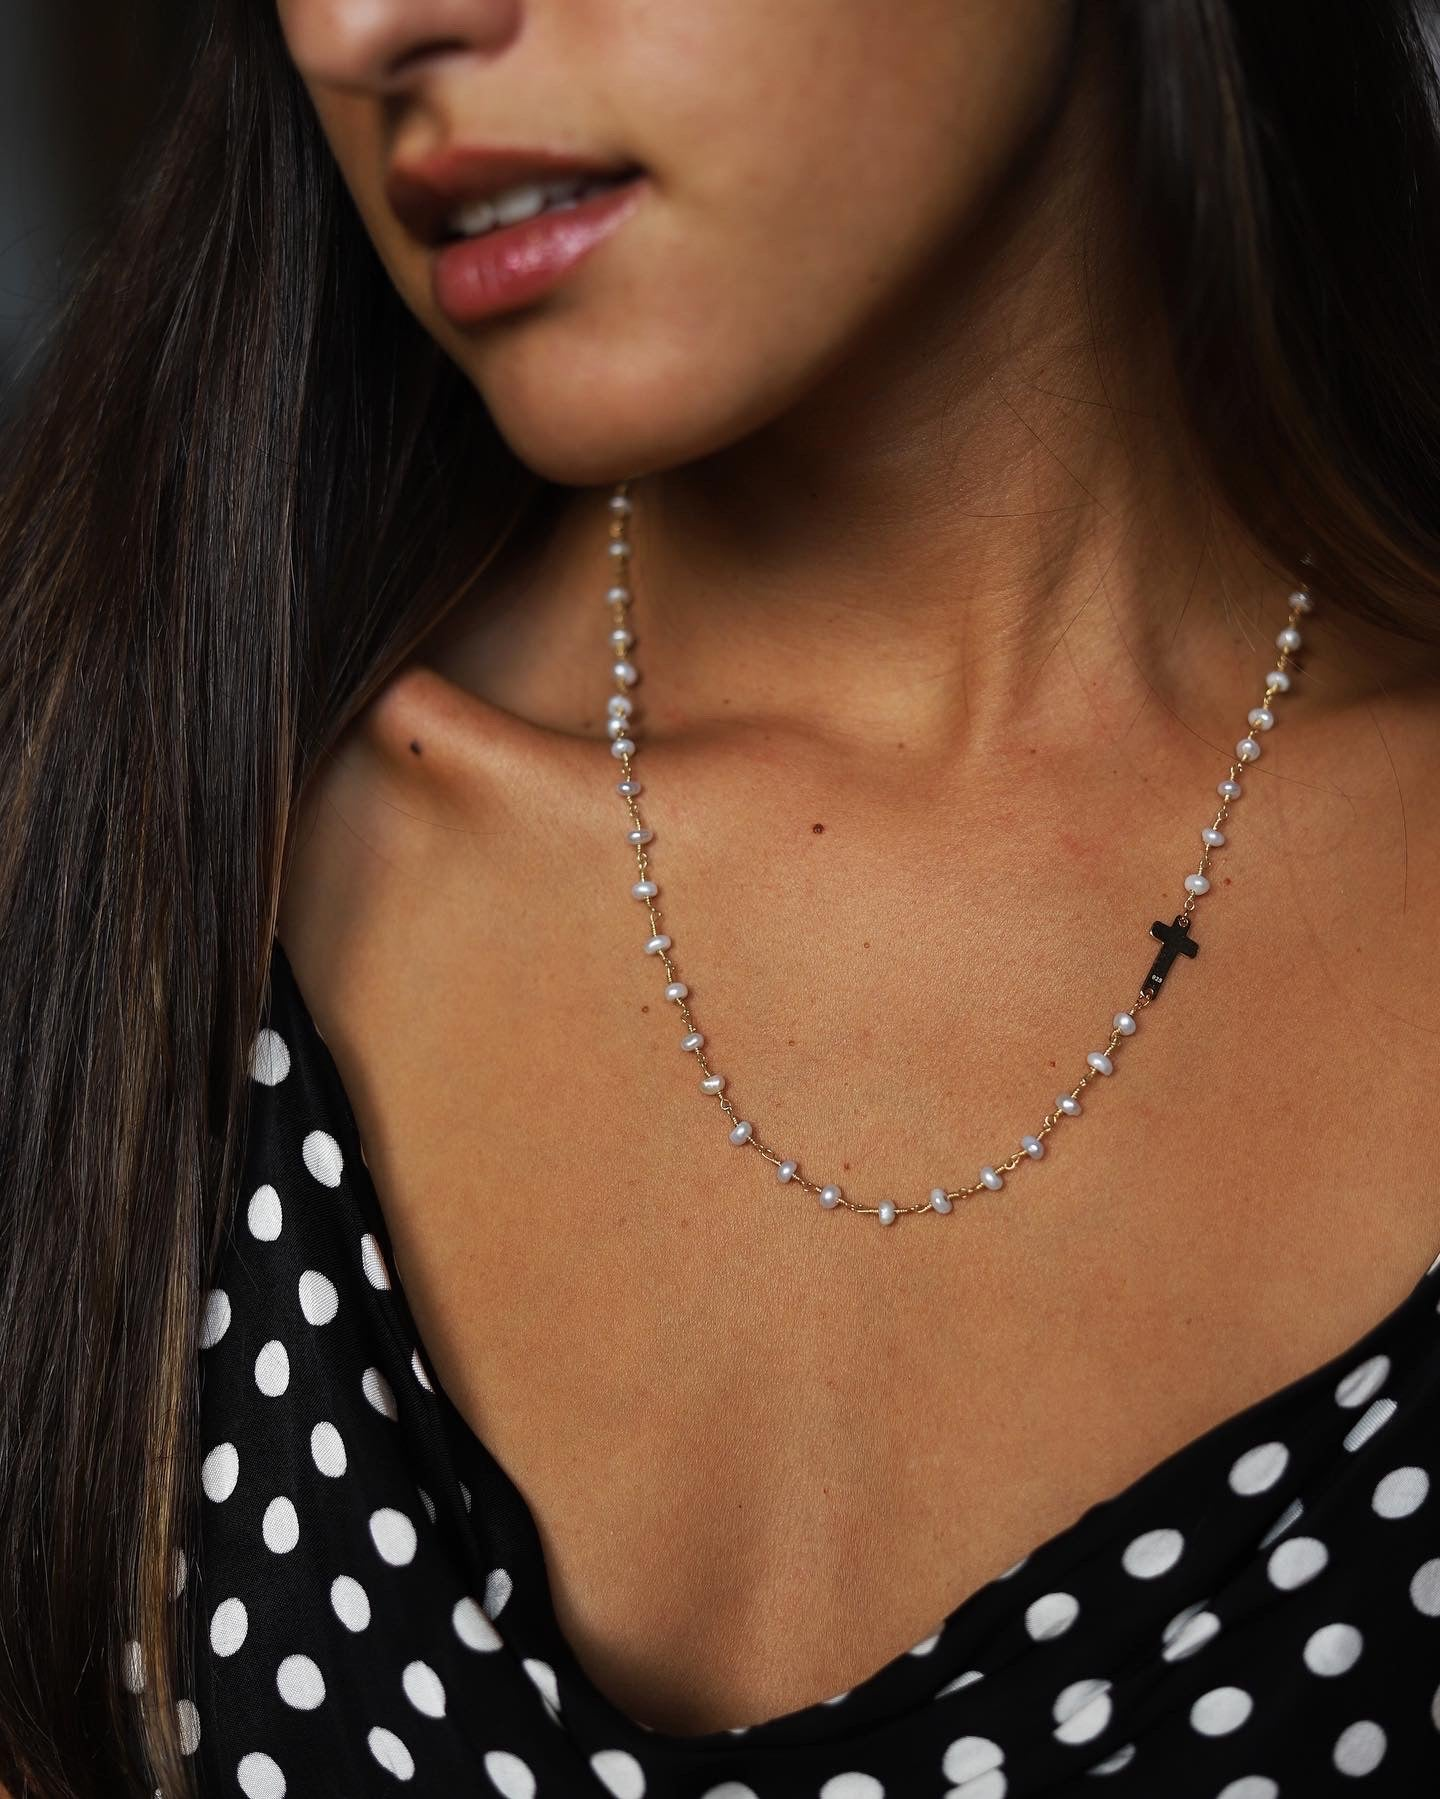 Pearls are a girl's BFF set